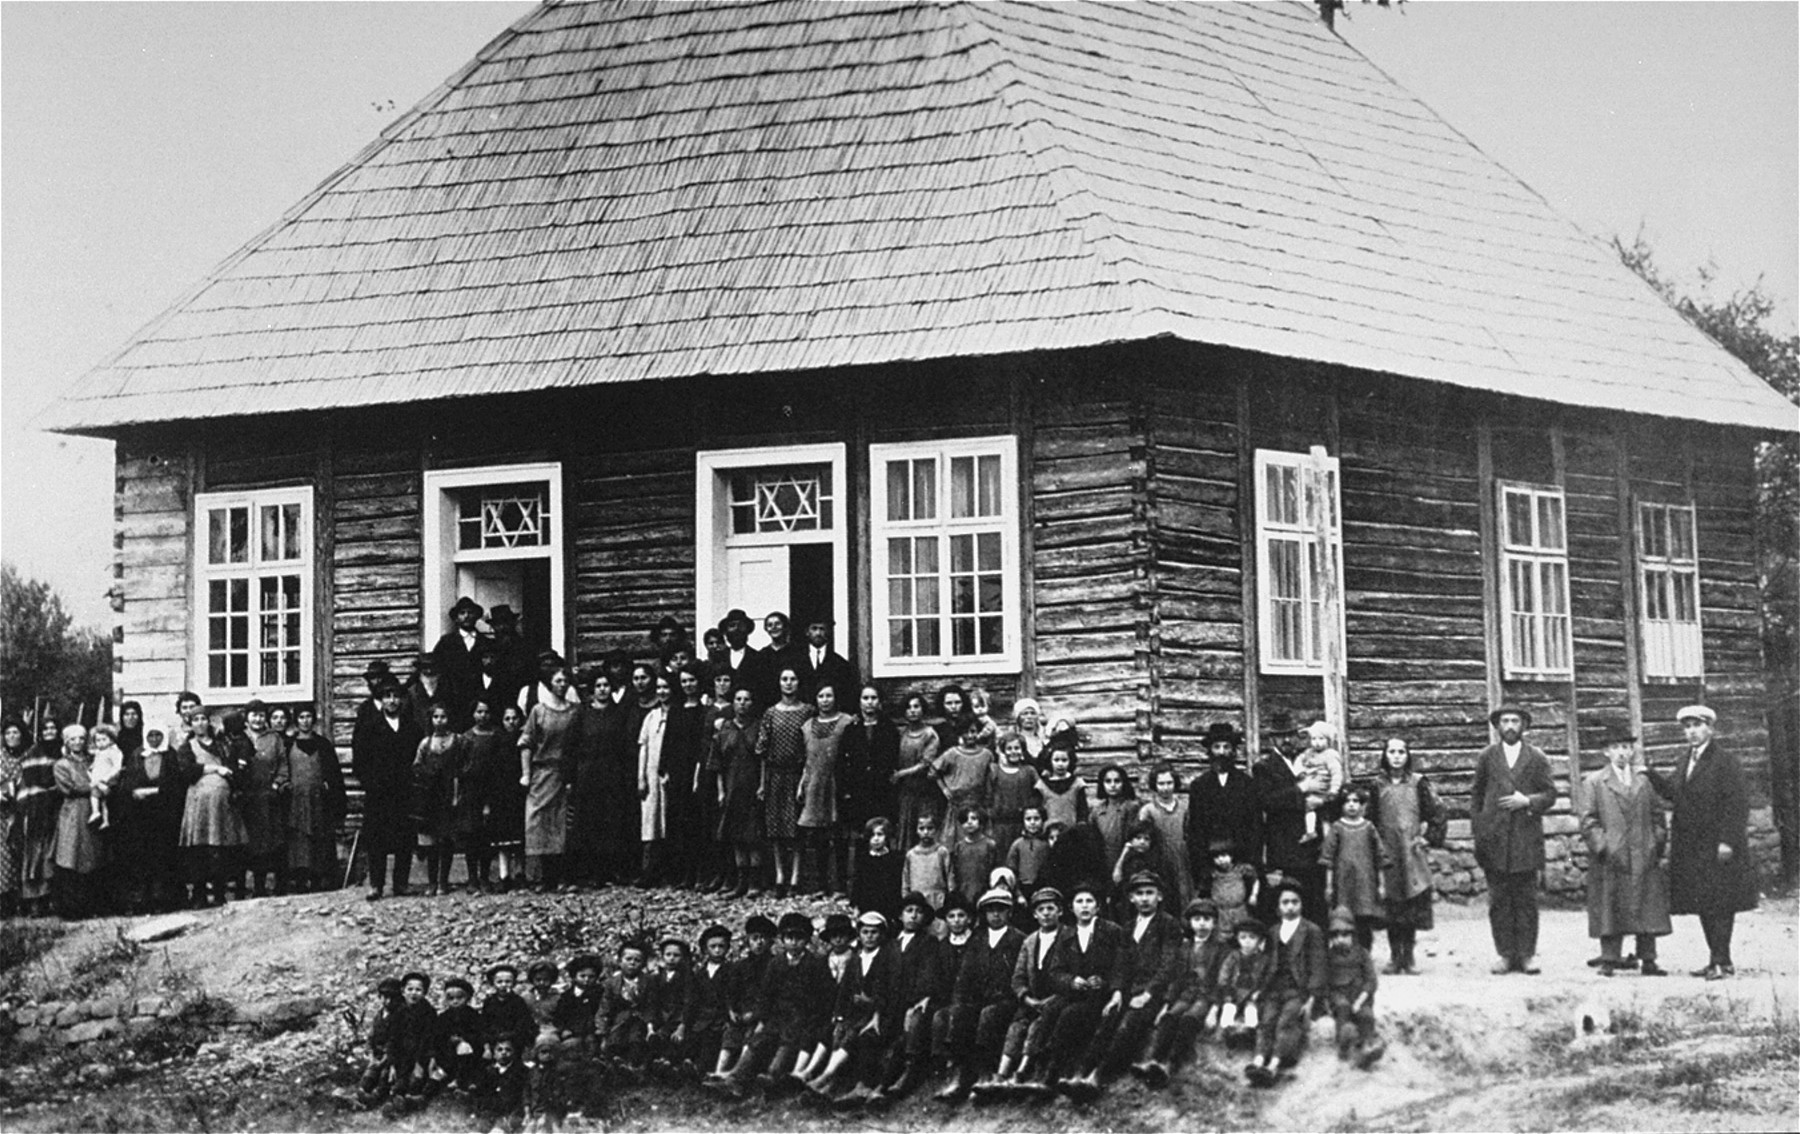 Group portrait of members of the Jewish community of Craciunesti in front of a wooden synagogue.